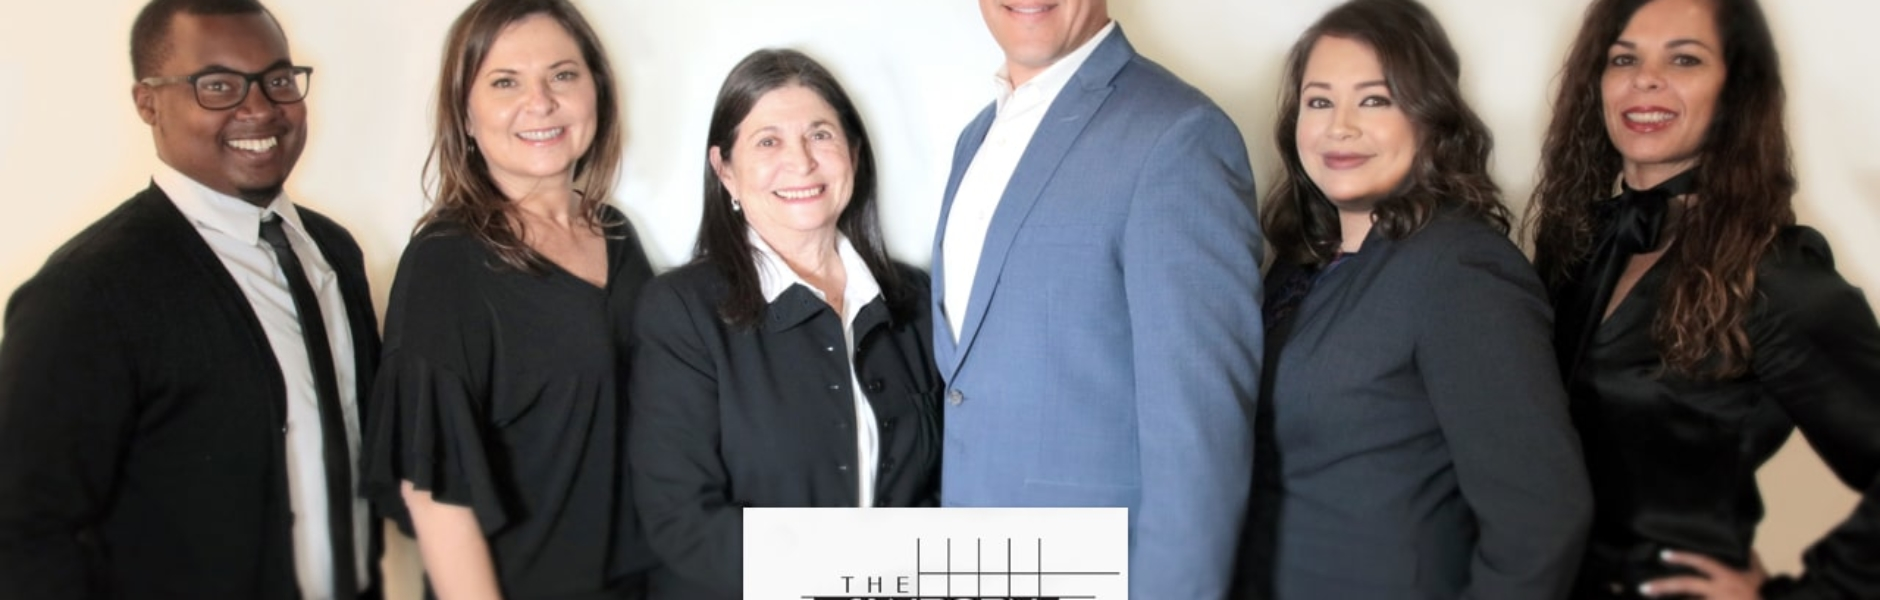 The Sanborn Team - Los Angeles Probate Real Estate